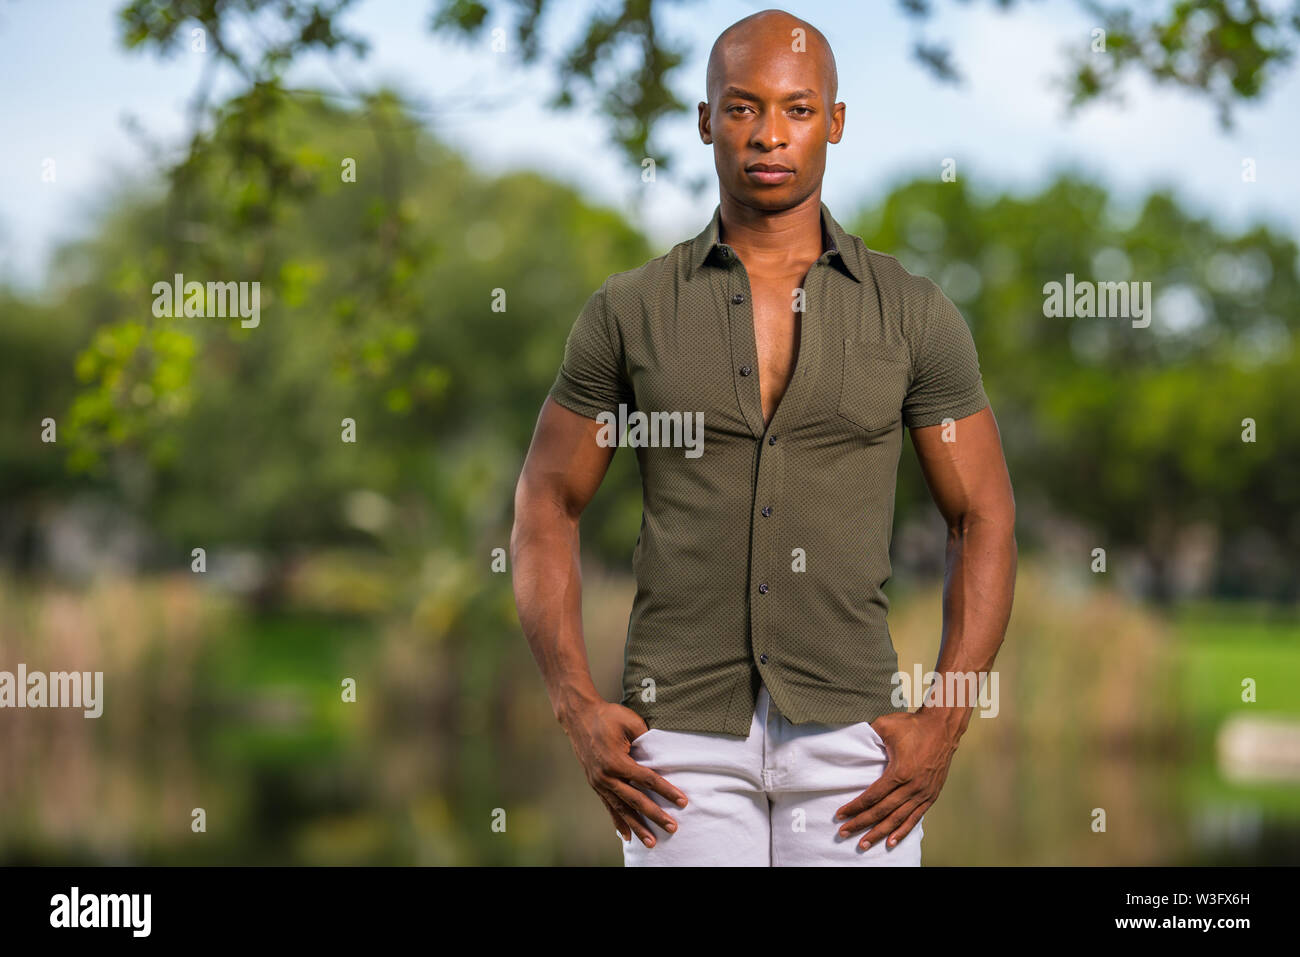 Photo of a handsome young African American male model posing with hands in pockets - Stock Image